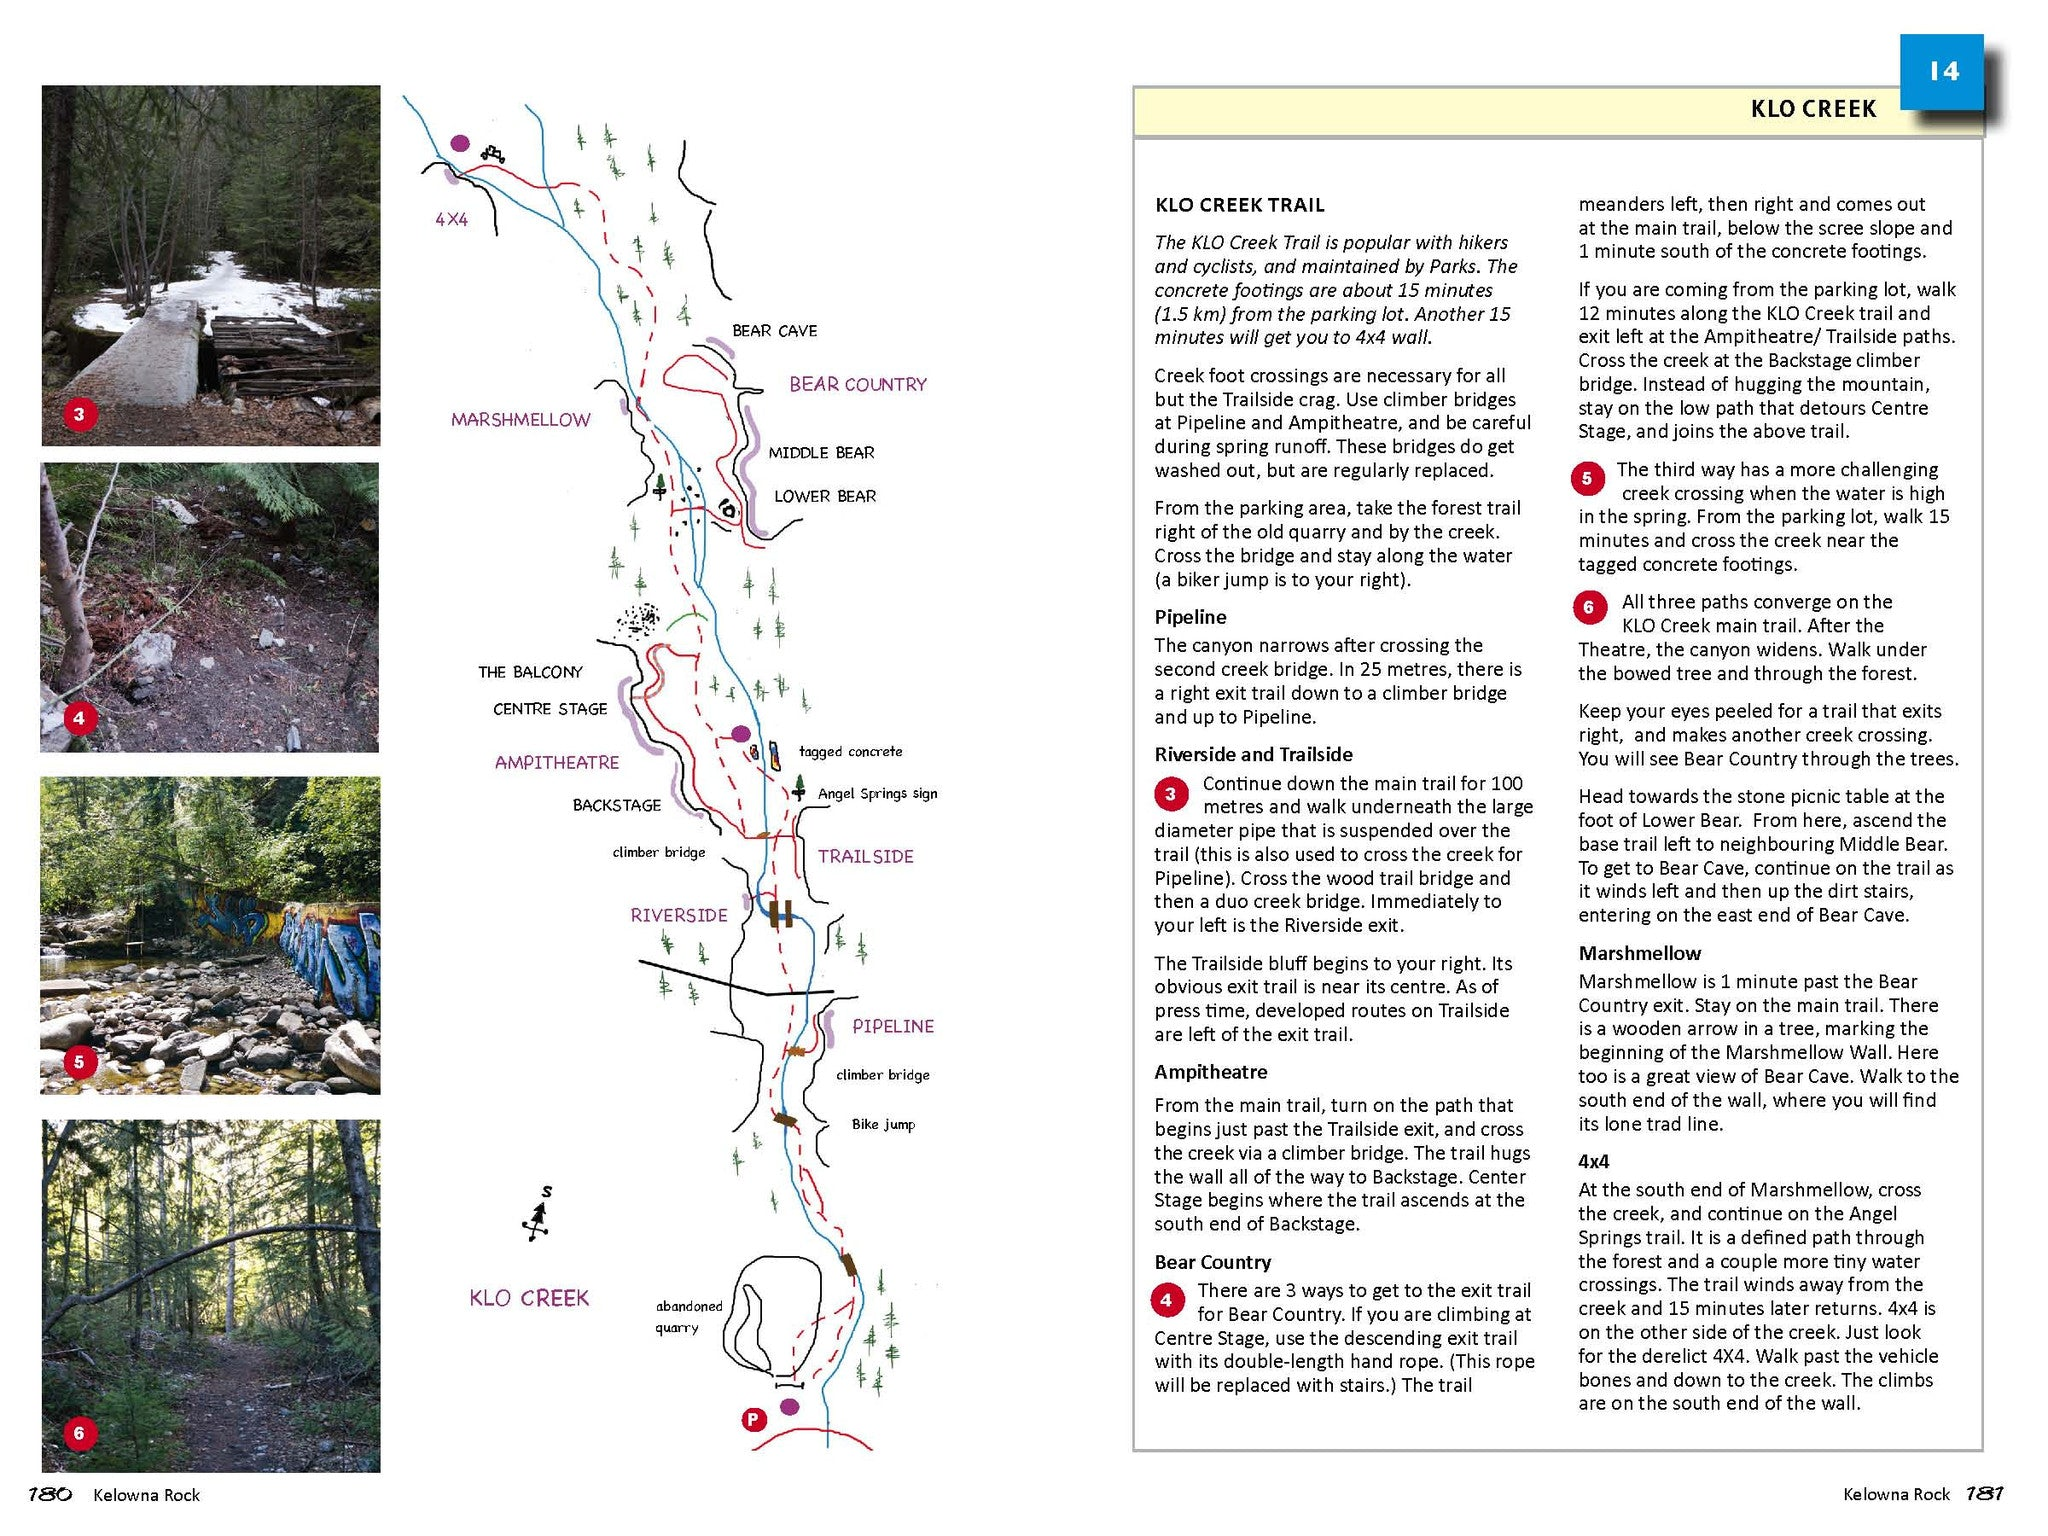 KLO Creek Trail and trail directions, Kelowna Rock Climbing guidebook